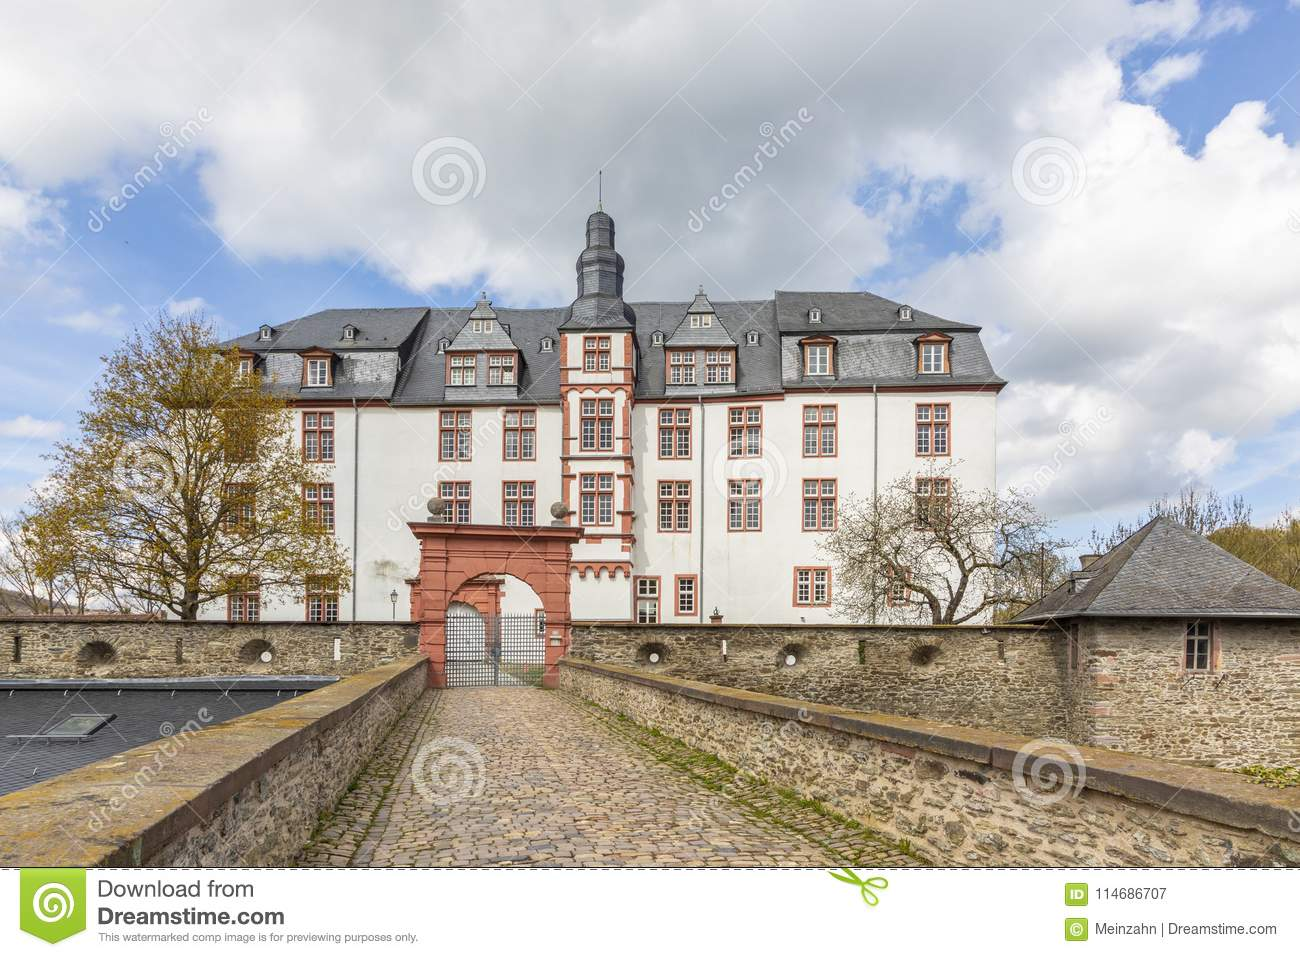 Facade of historic castle in Idstein, Germany